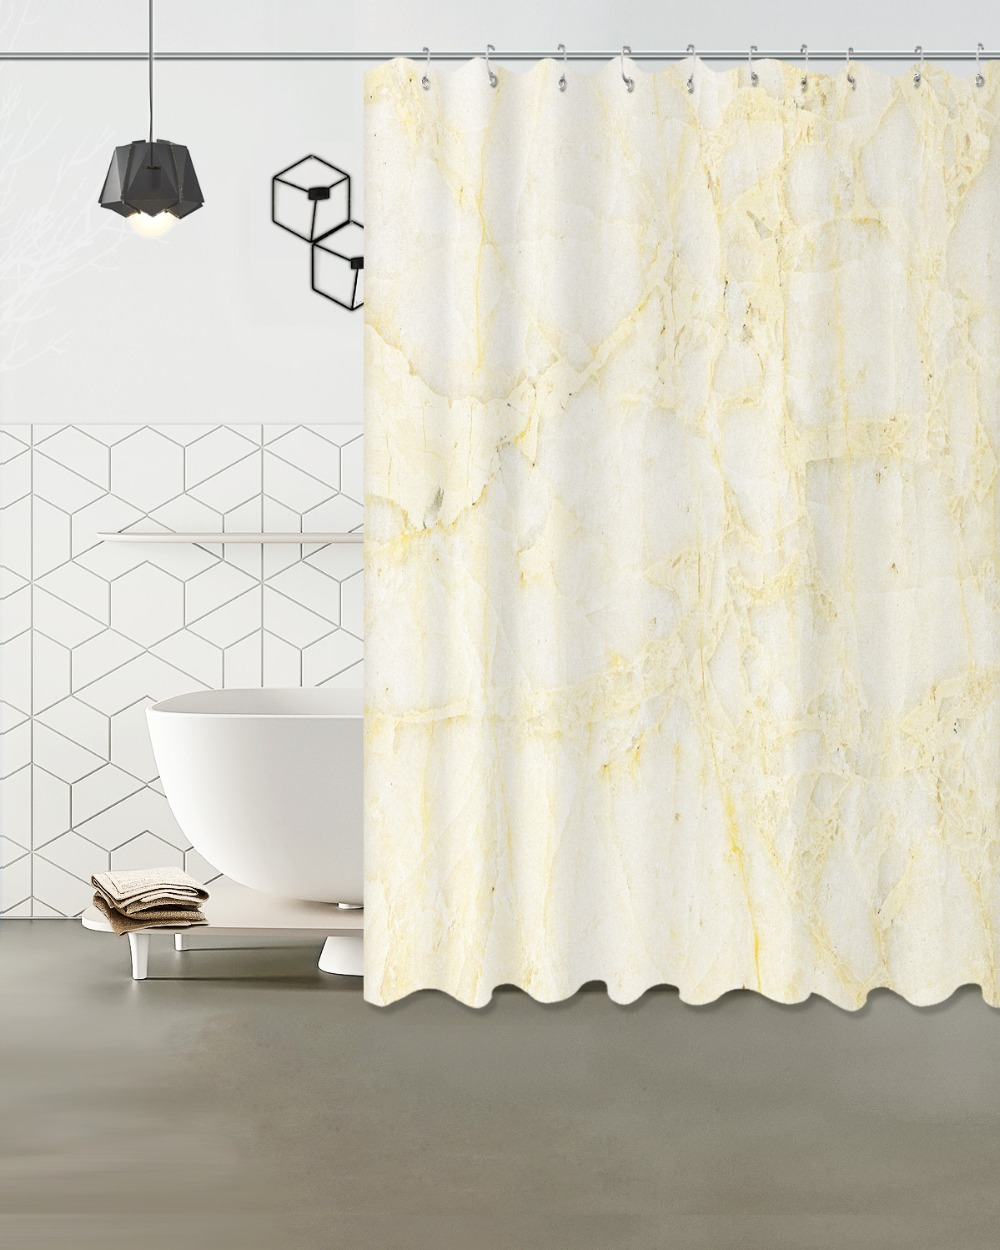 Us 14 12 47 Off Fabric Polyester Cream Marble Veins Waterproof Shower Curtains Fabric Bathroom Shower Curtains 180x180cm Or 150x180cm In Shower